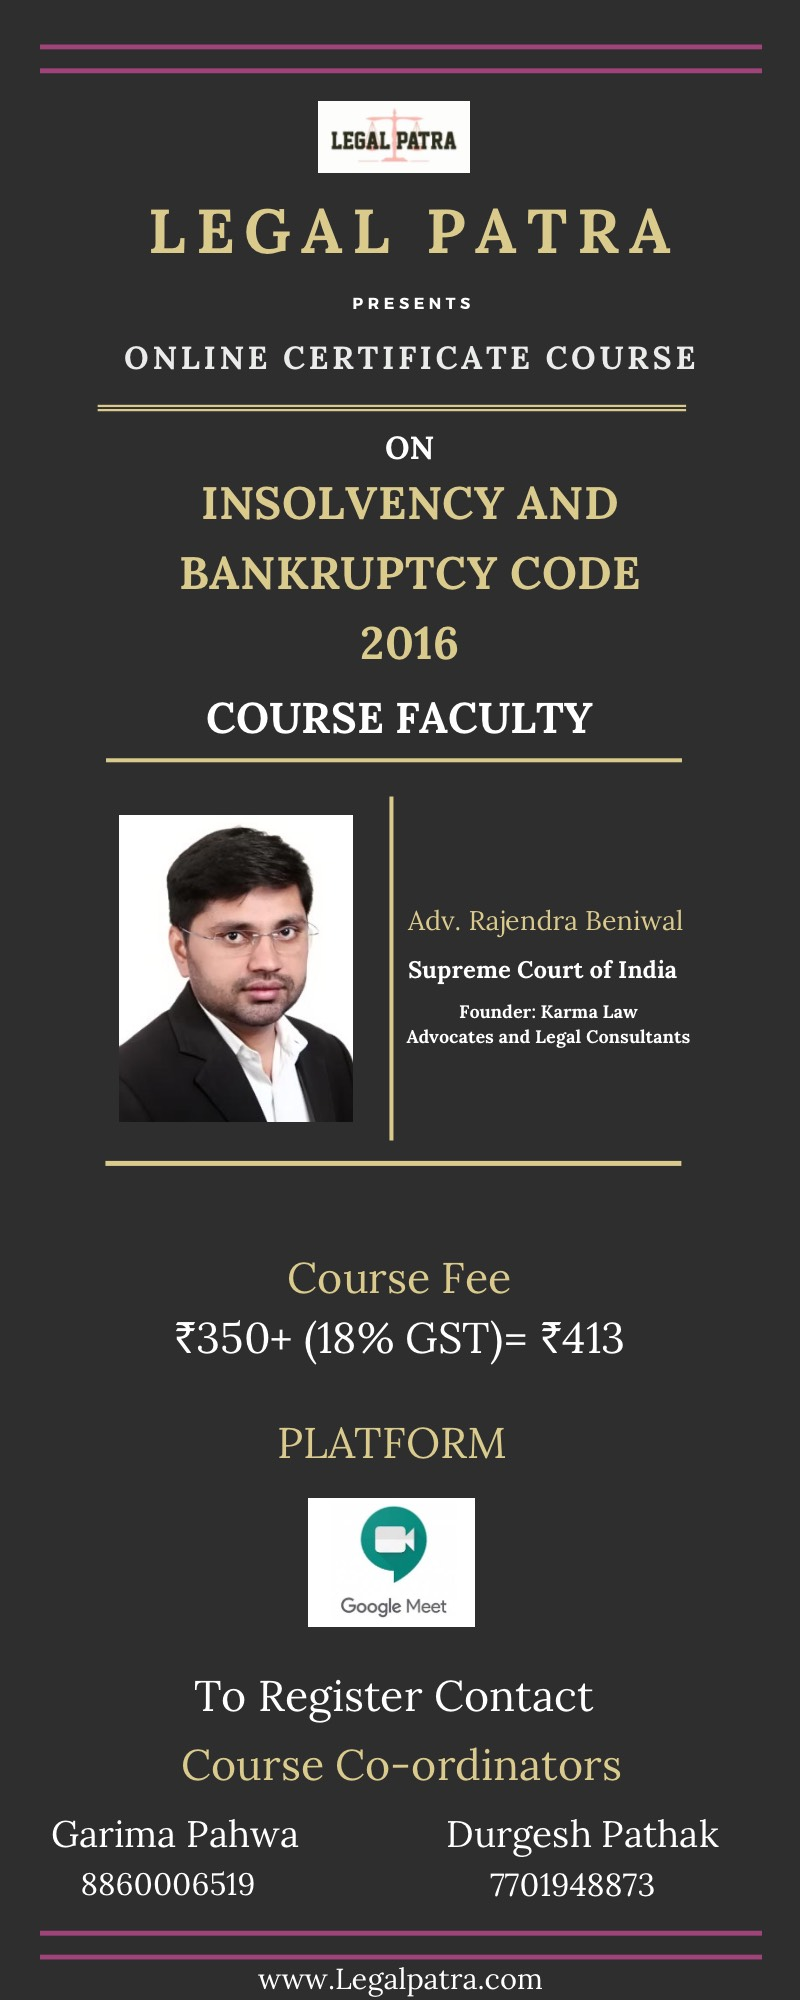 LEGAL PATRA – CERTIFICATE COURSE ON INSOLVENCY AND BANKRUPTCY CODE 2016 – REGISTER BEFORE 30TH OCTOBER